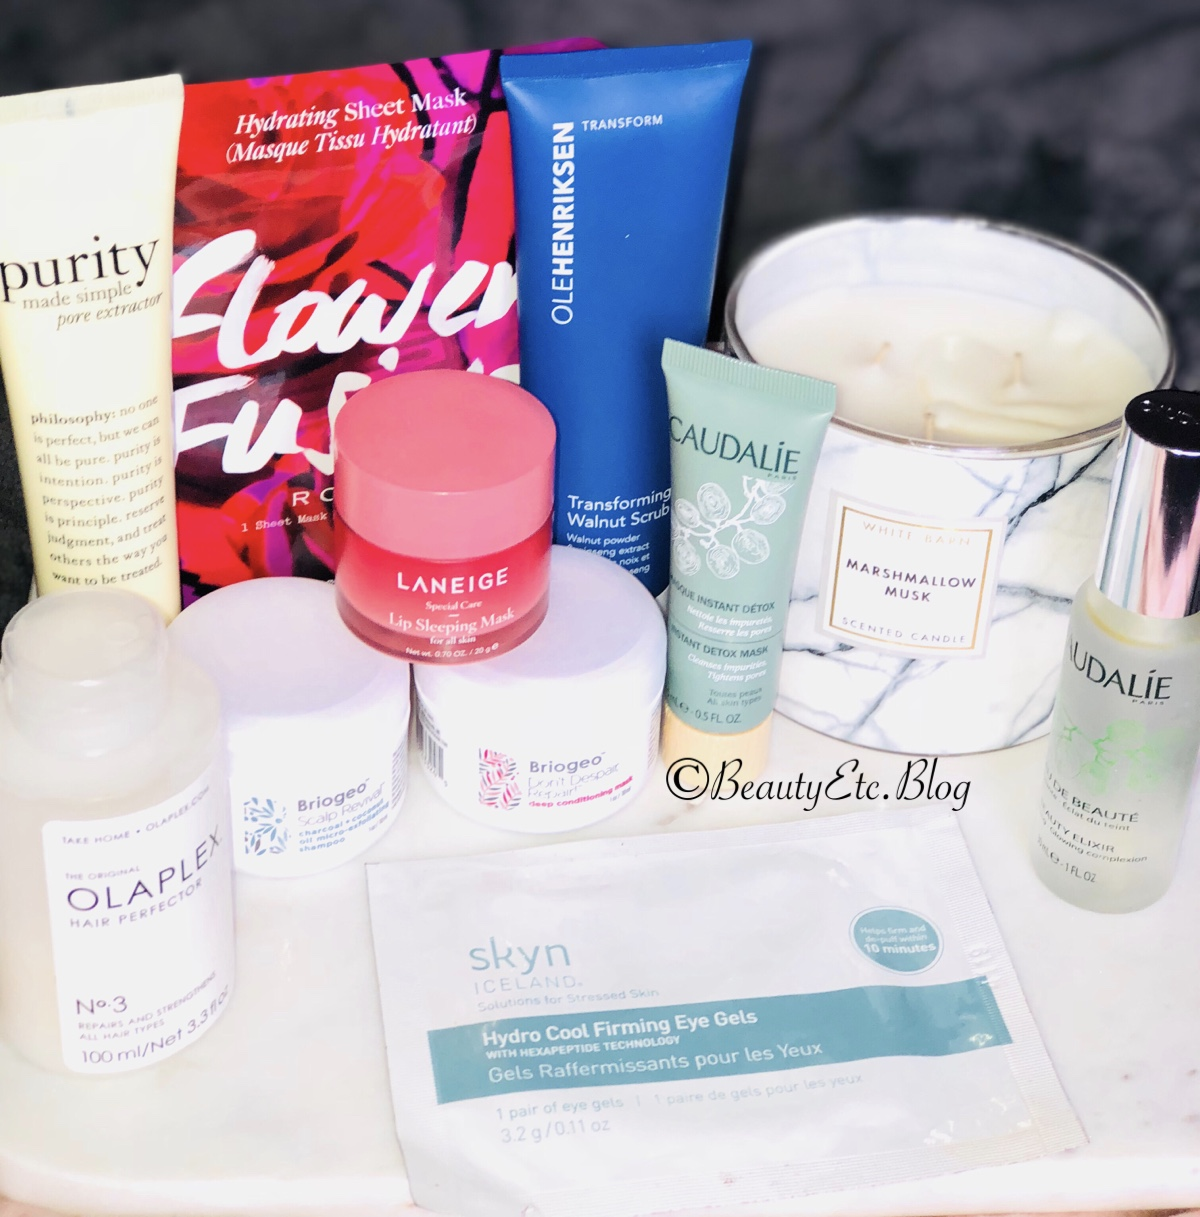 Just a few of my favorite beauty care items.